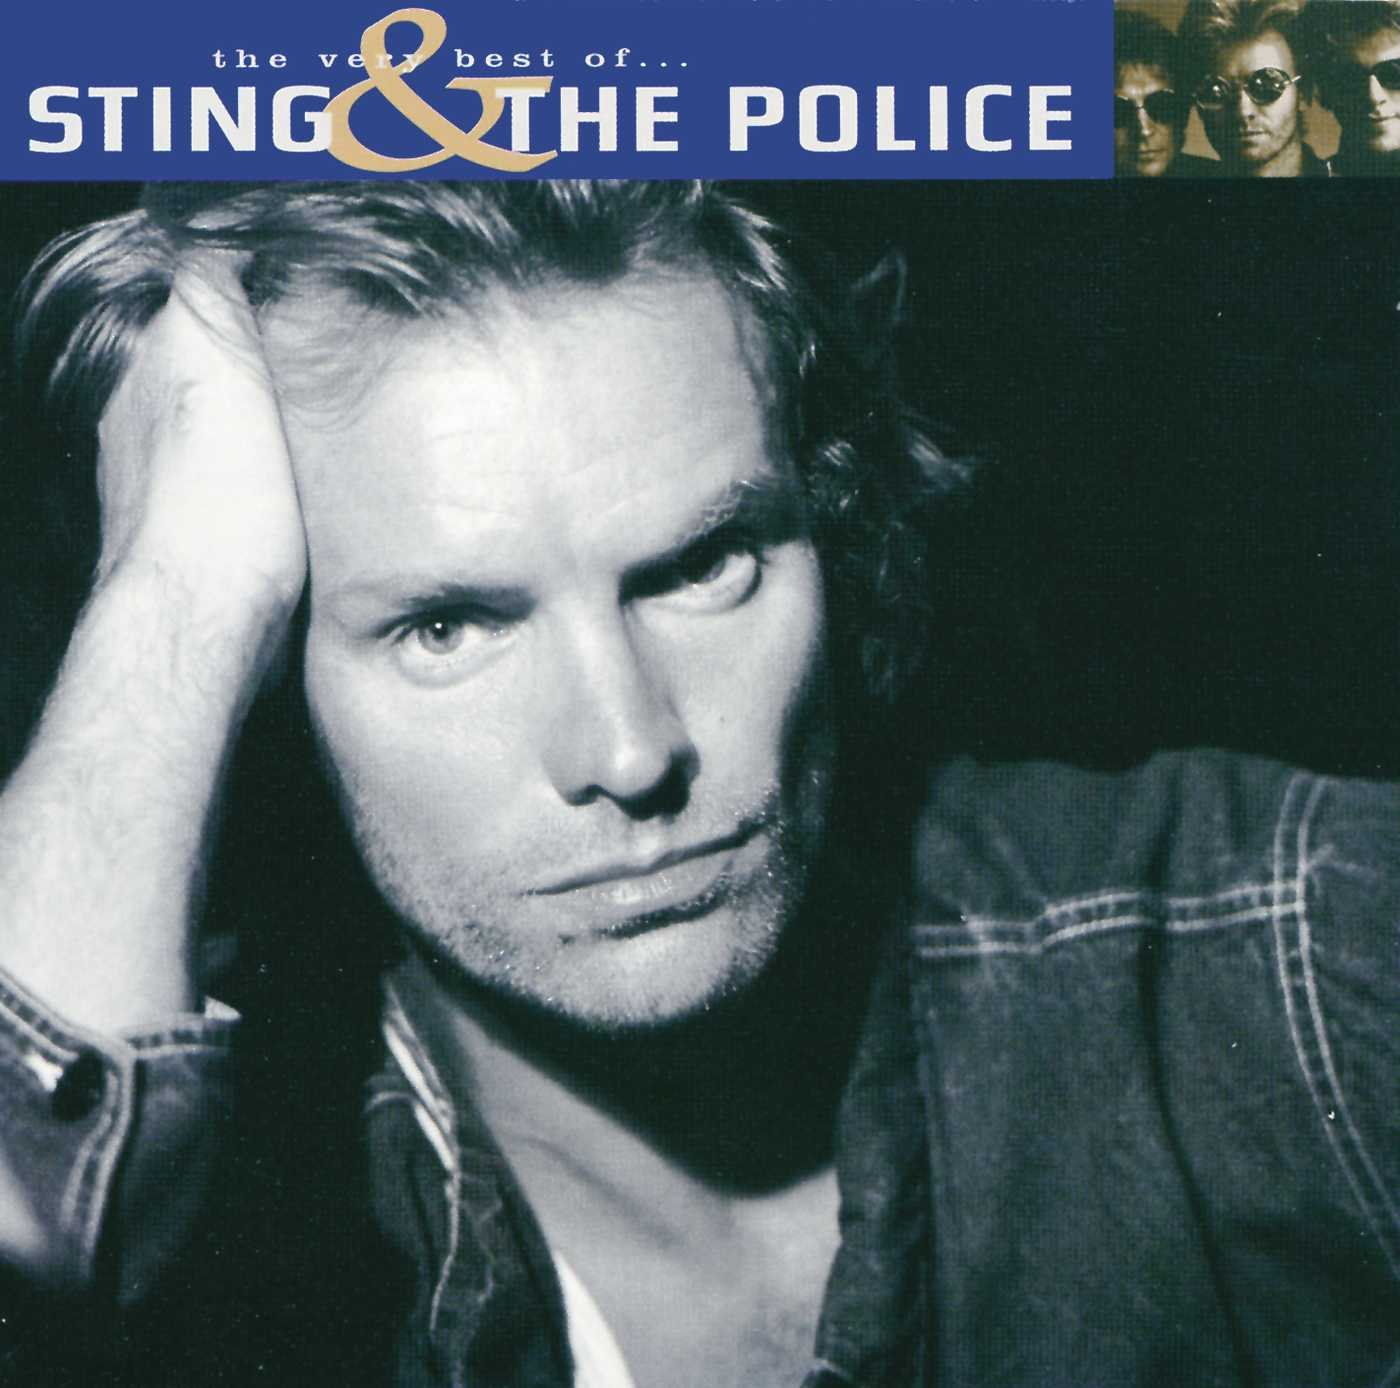 The Very Best of... Sting & the Police by New Day